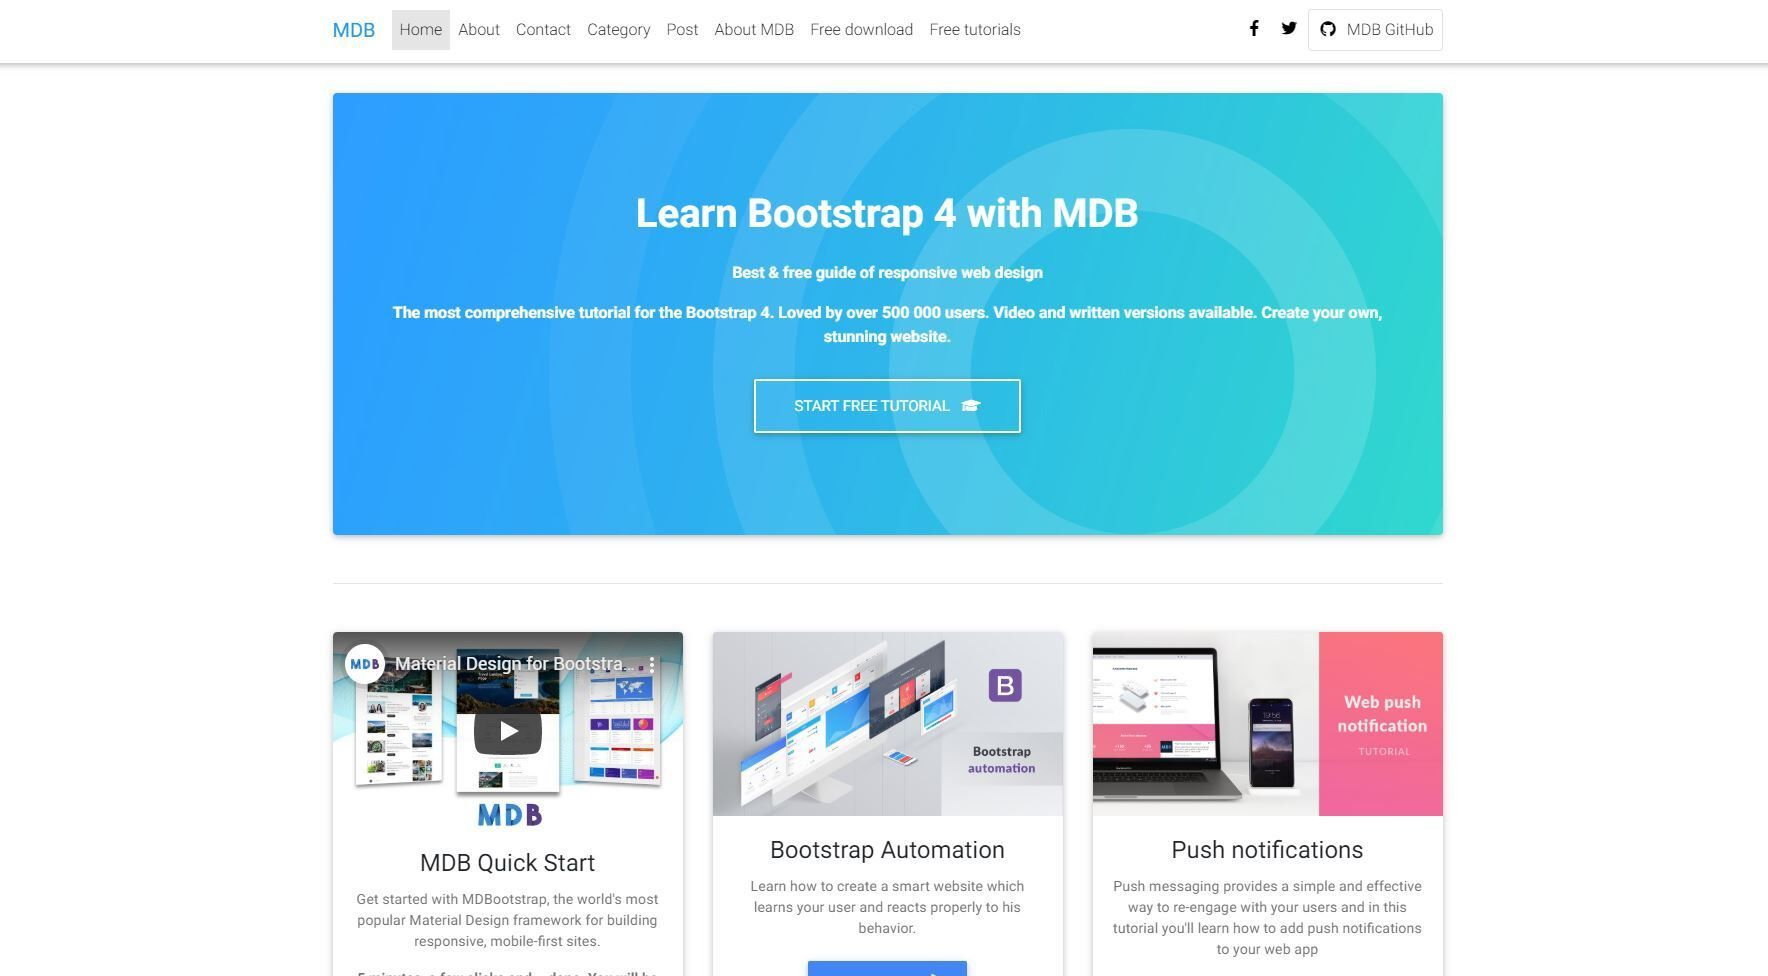 006 Awesome Web Page Design Template In Asp Net Idea  Asp.netFull